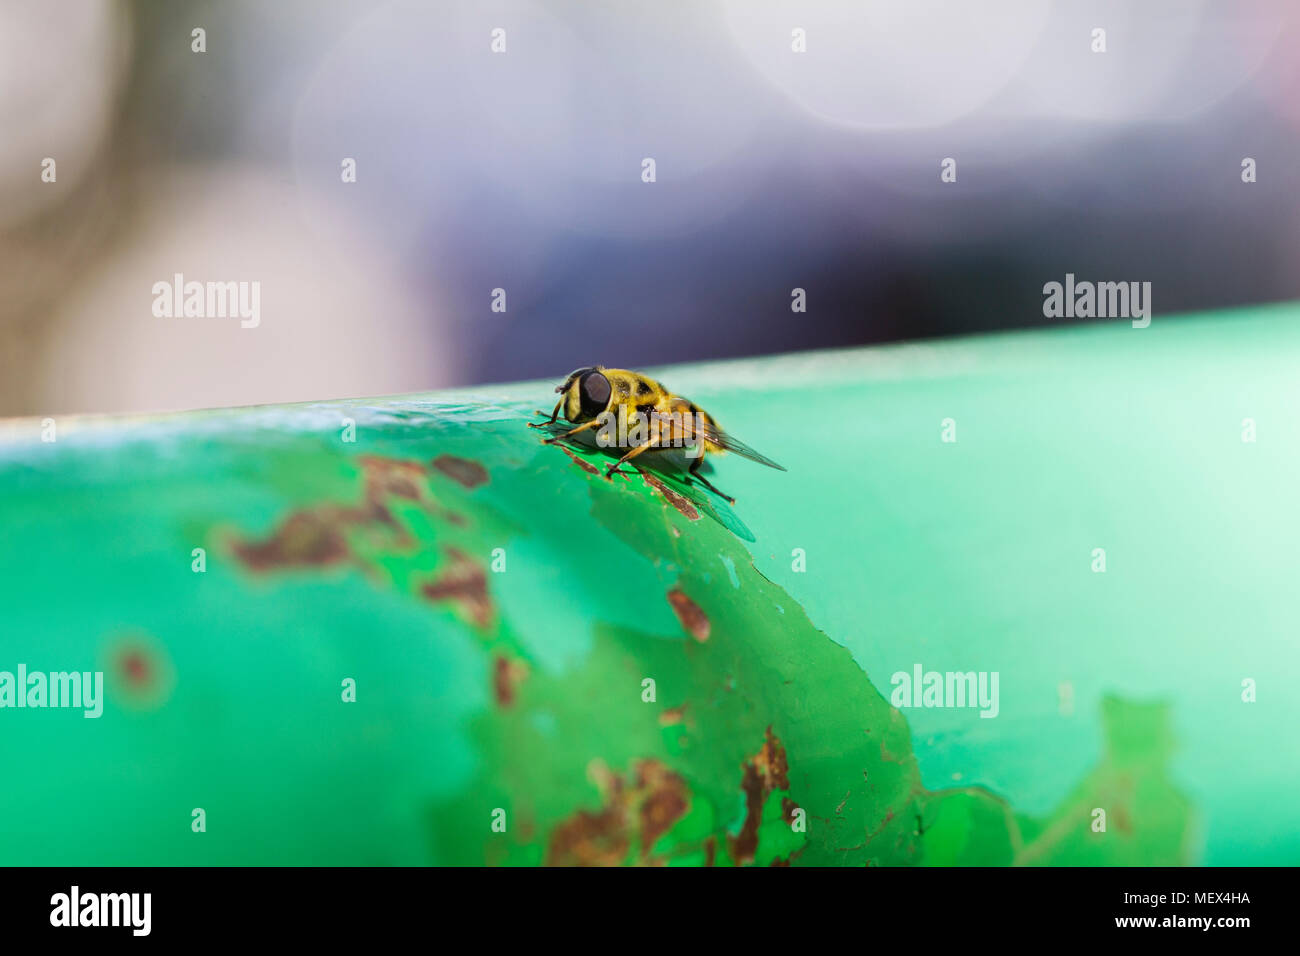 Close-up of a small bee on a metal lever - Stock Image